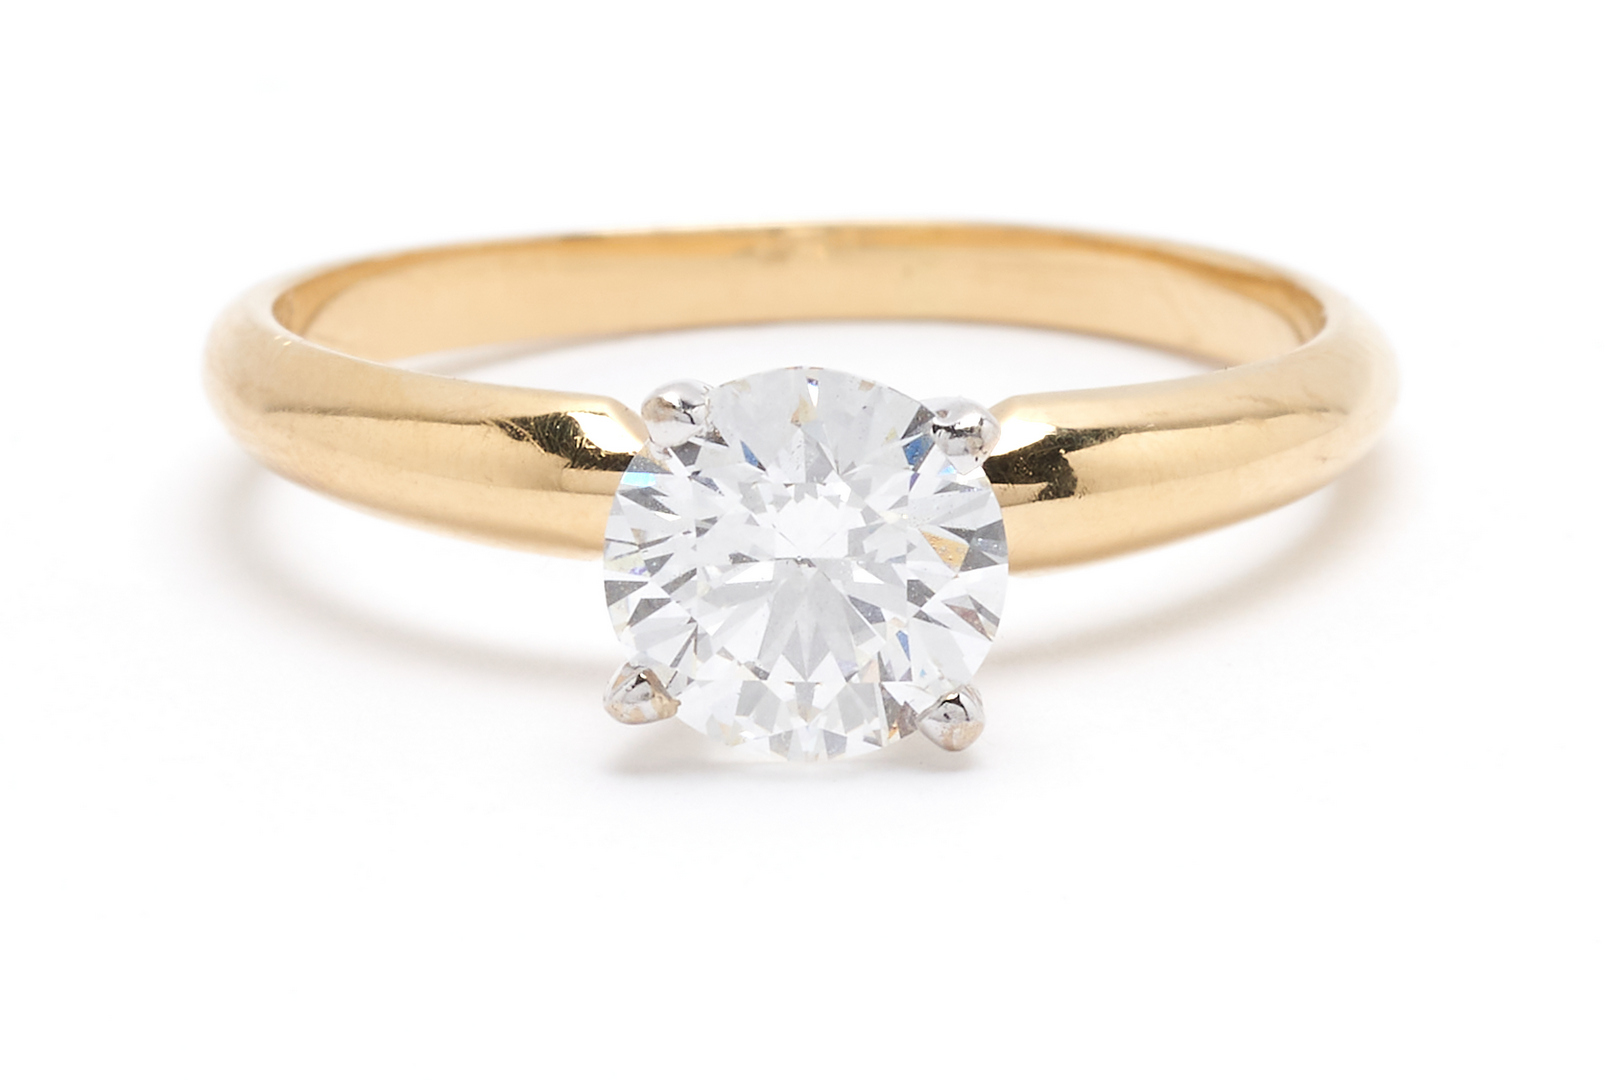 Lot 43: 1.03 Carat GIA Diamond Ring, F Color and 18K Dia. Band